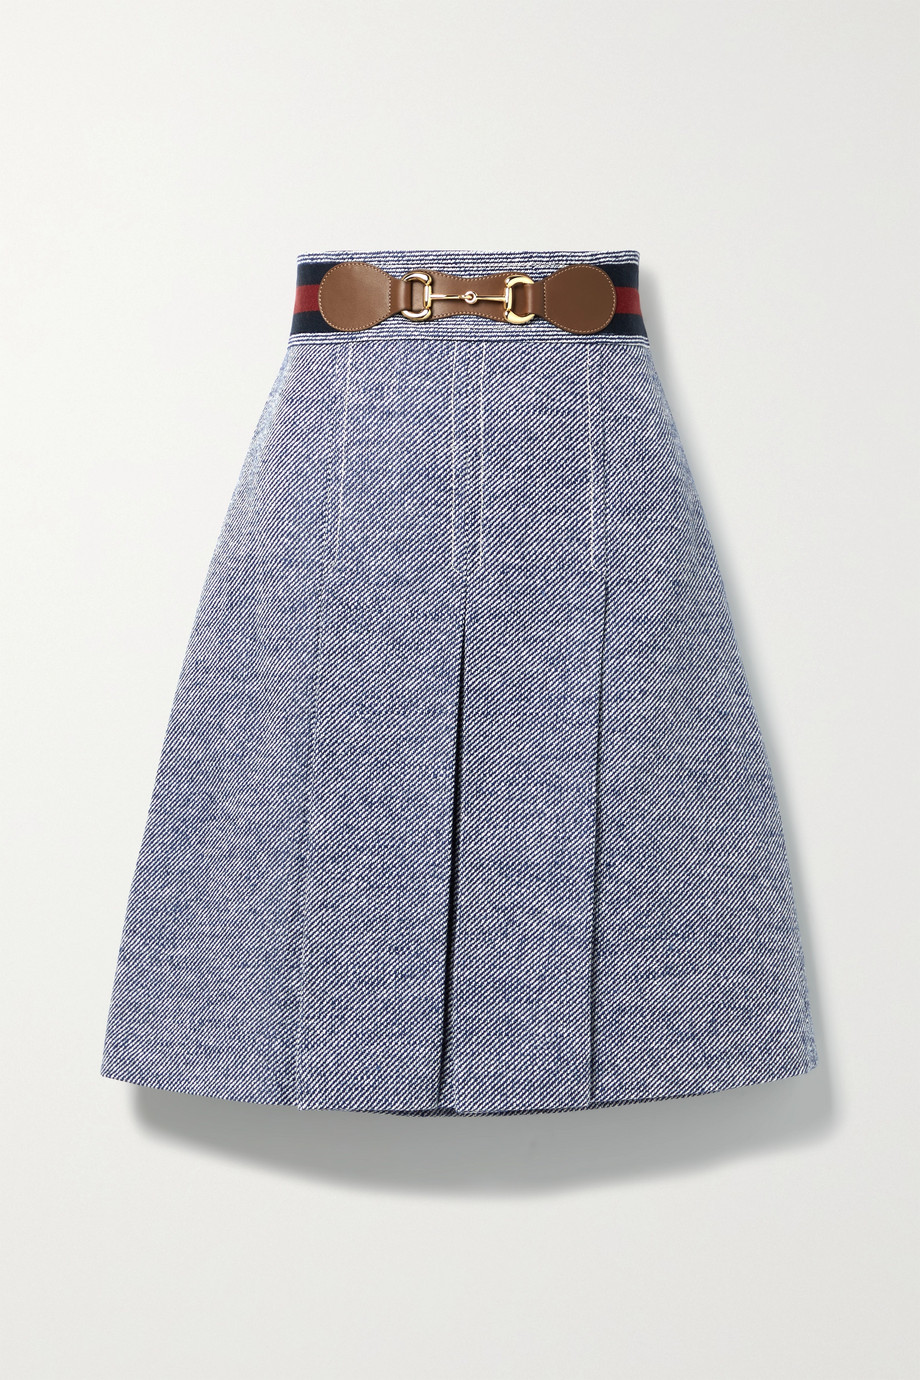 GUCCI Horsebit-detailed leather-trimmed pleated woven skirt